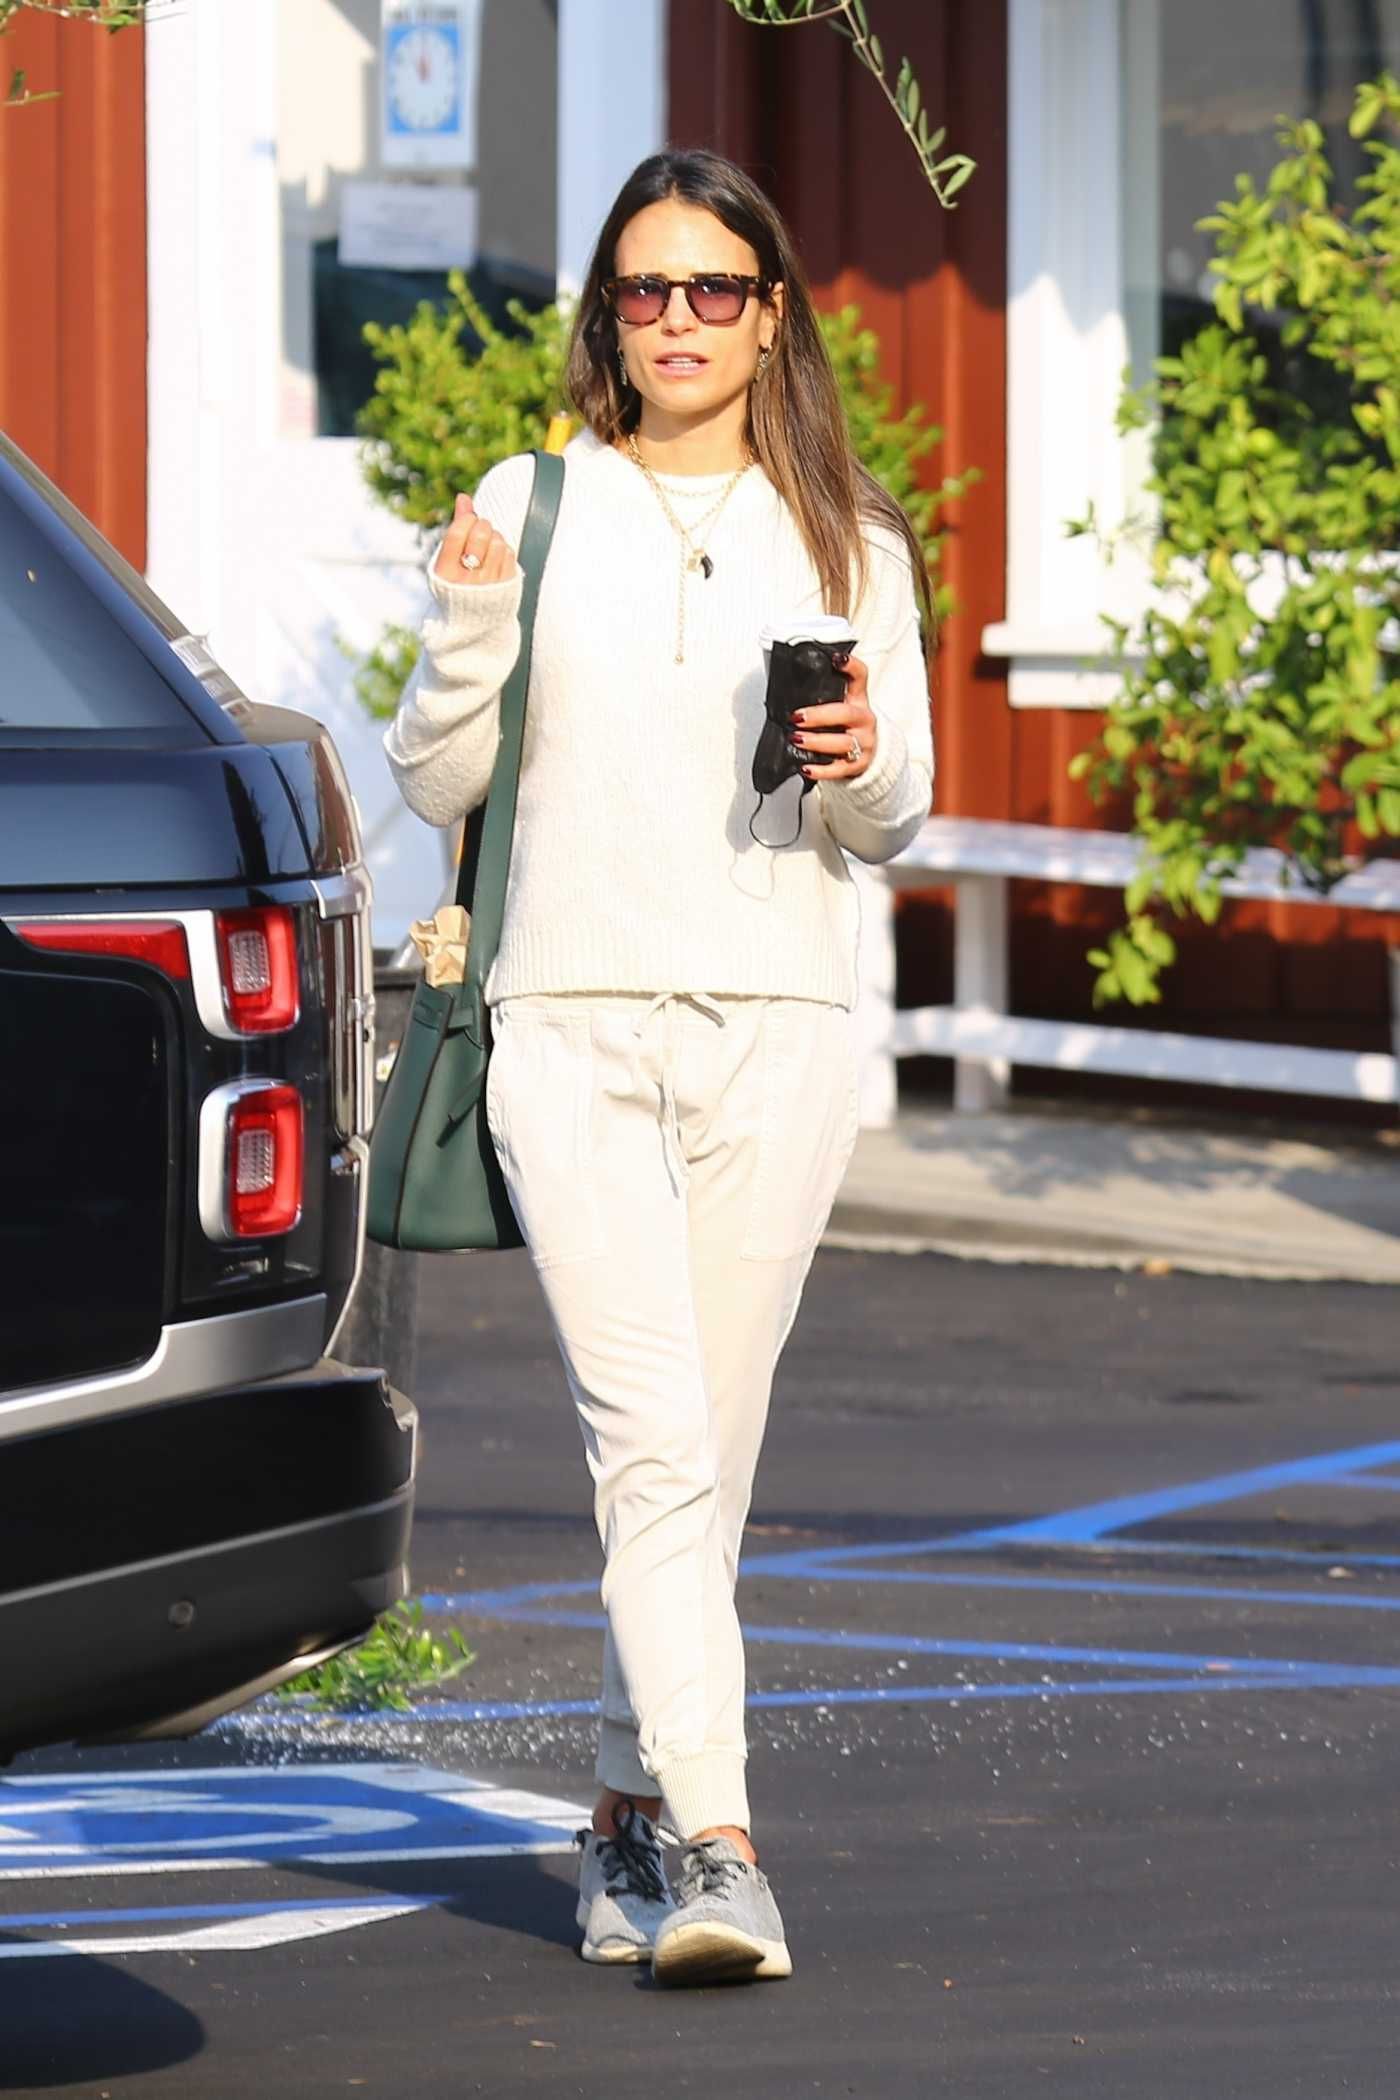 Jordana Brewster in a Beige Outfit Was Seen Out in Brentwood 09/29/2021